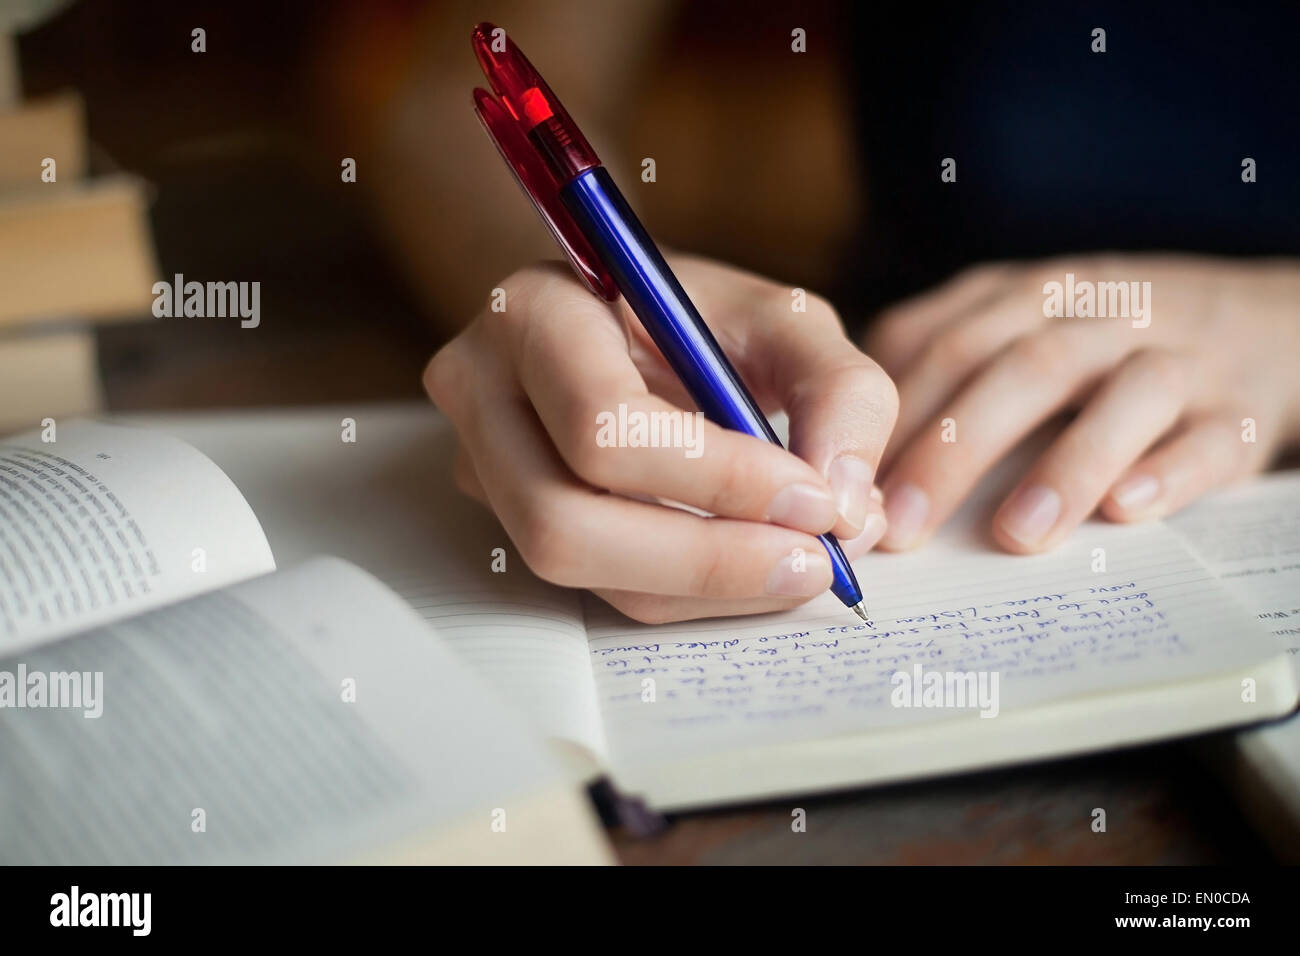 learning literature - Stock Image